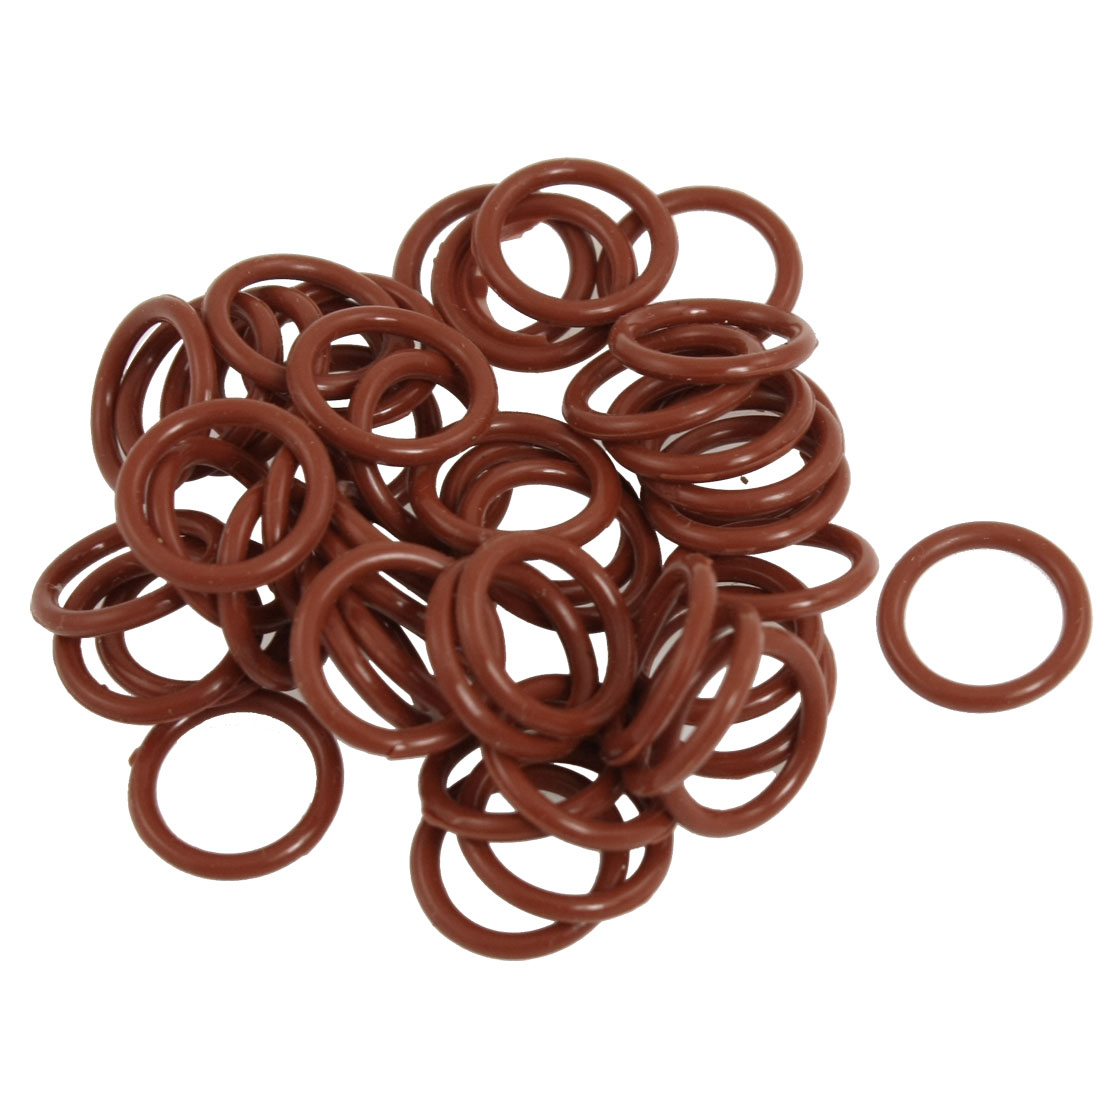 50 Pcs Red Silicone O Ring Oil Seals Gaskets 15mm x 2mm